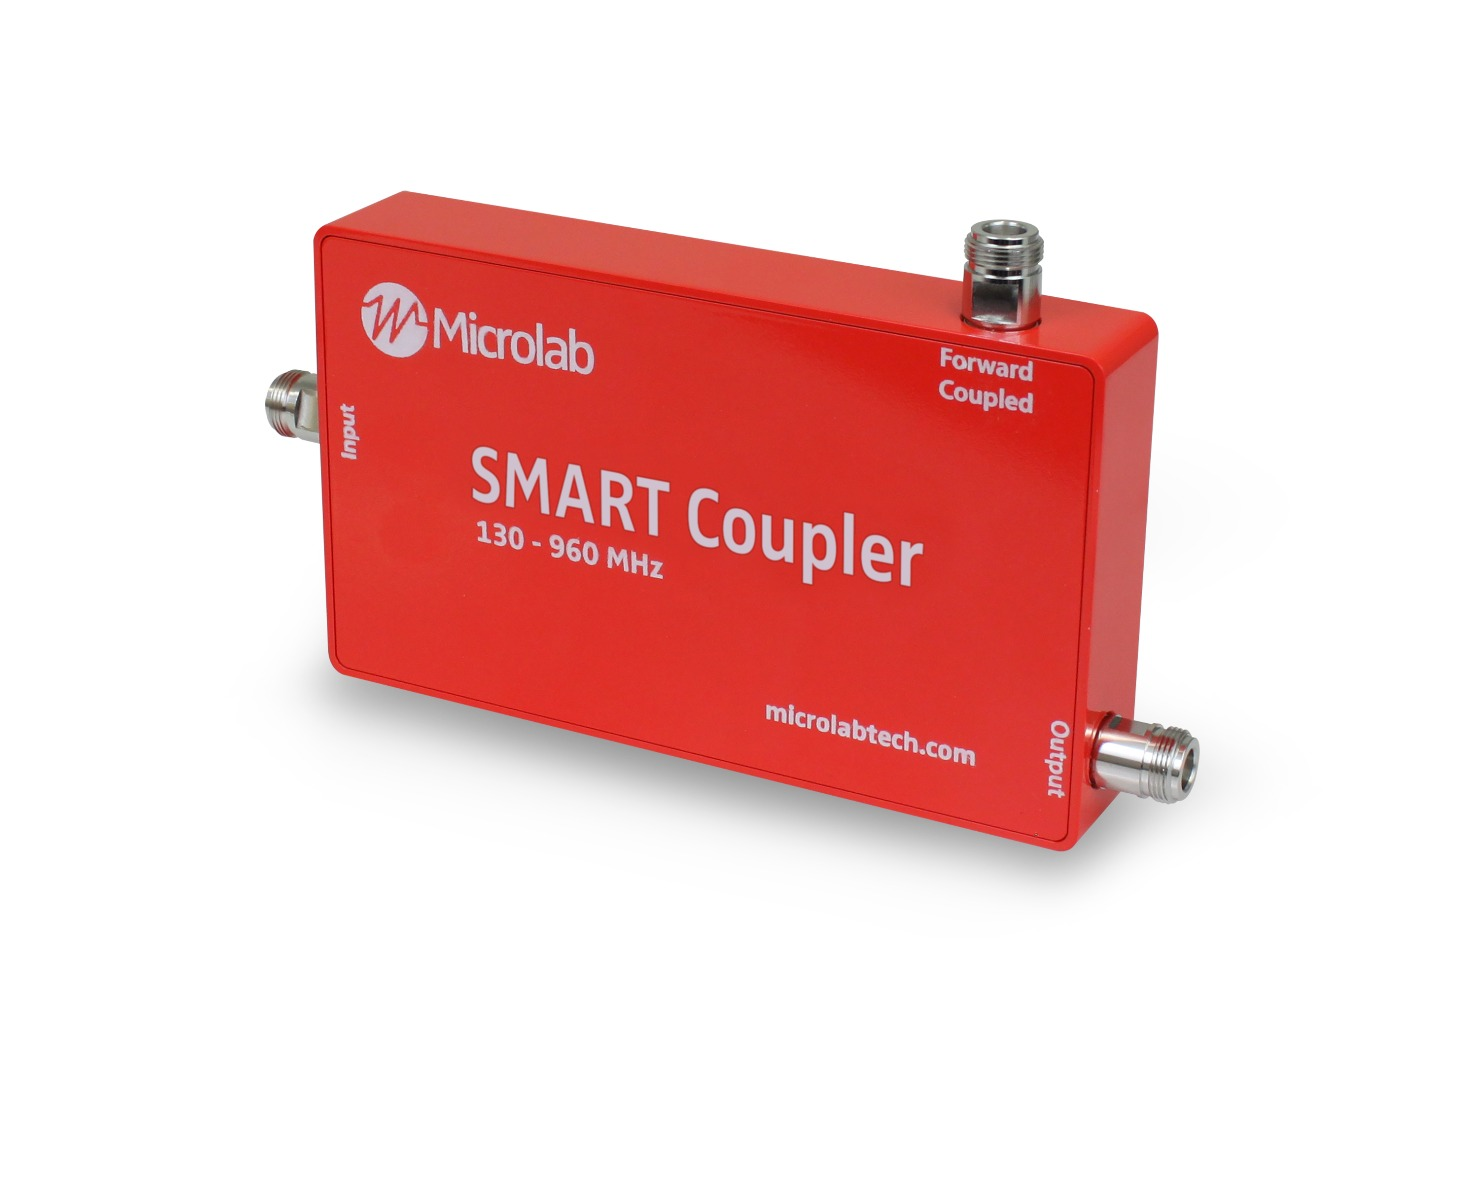 The Microlab SMART Coupler is a specially designed, broadband, passive coupler enclosed with active circuitry to enable real-time public safety DAS monitoring.